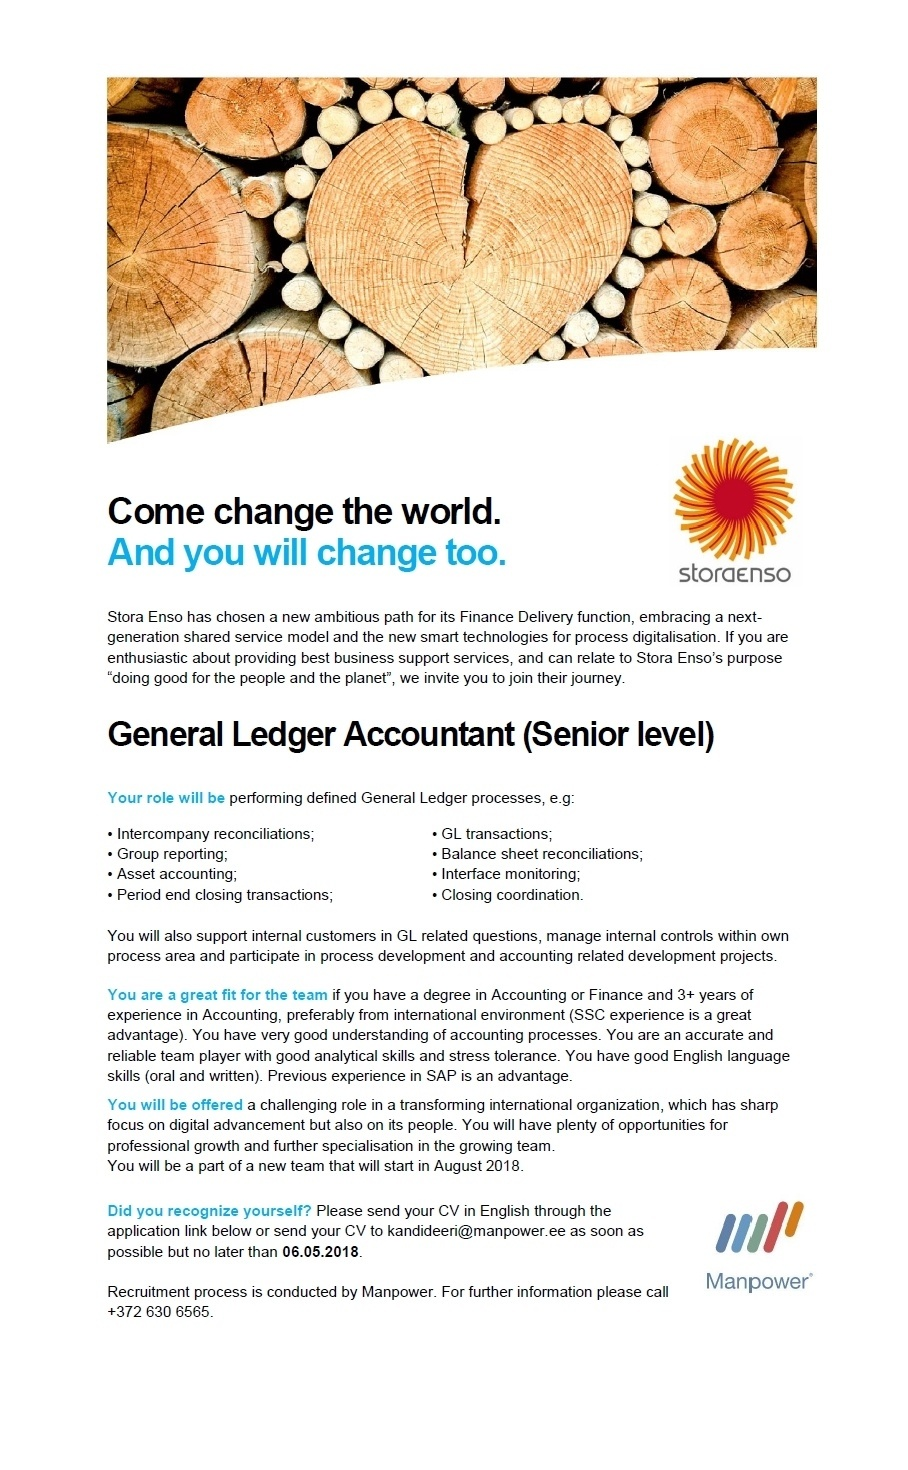 CVKeskus.ee client General Ledger Accountant (Senior level)